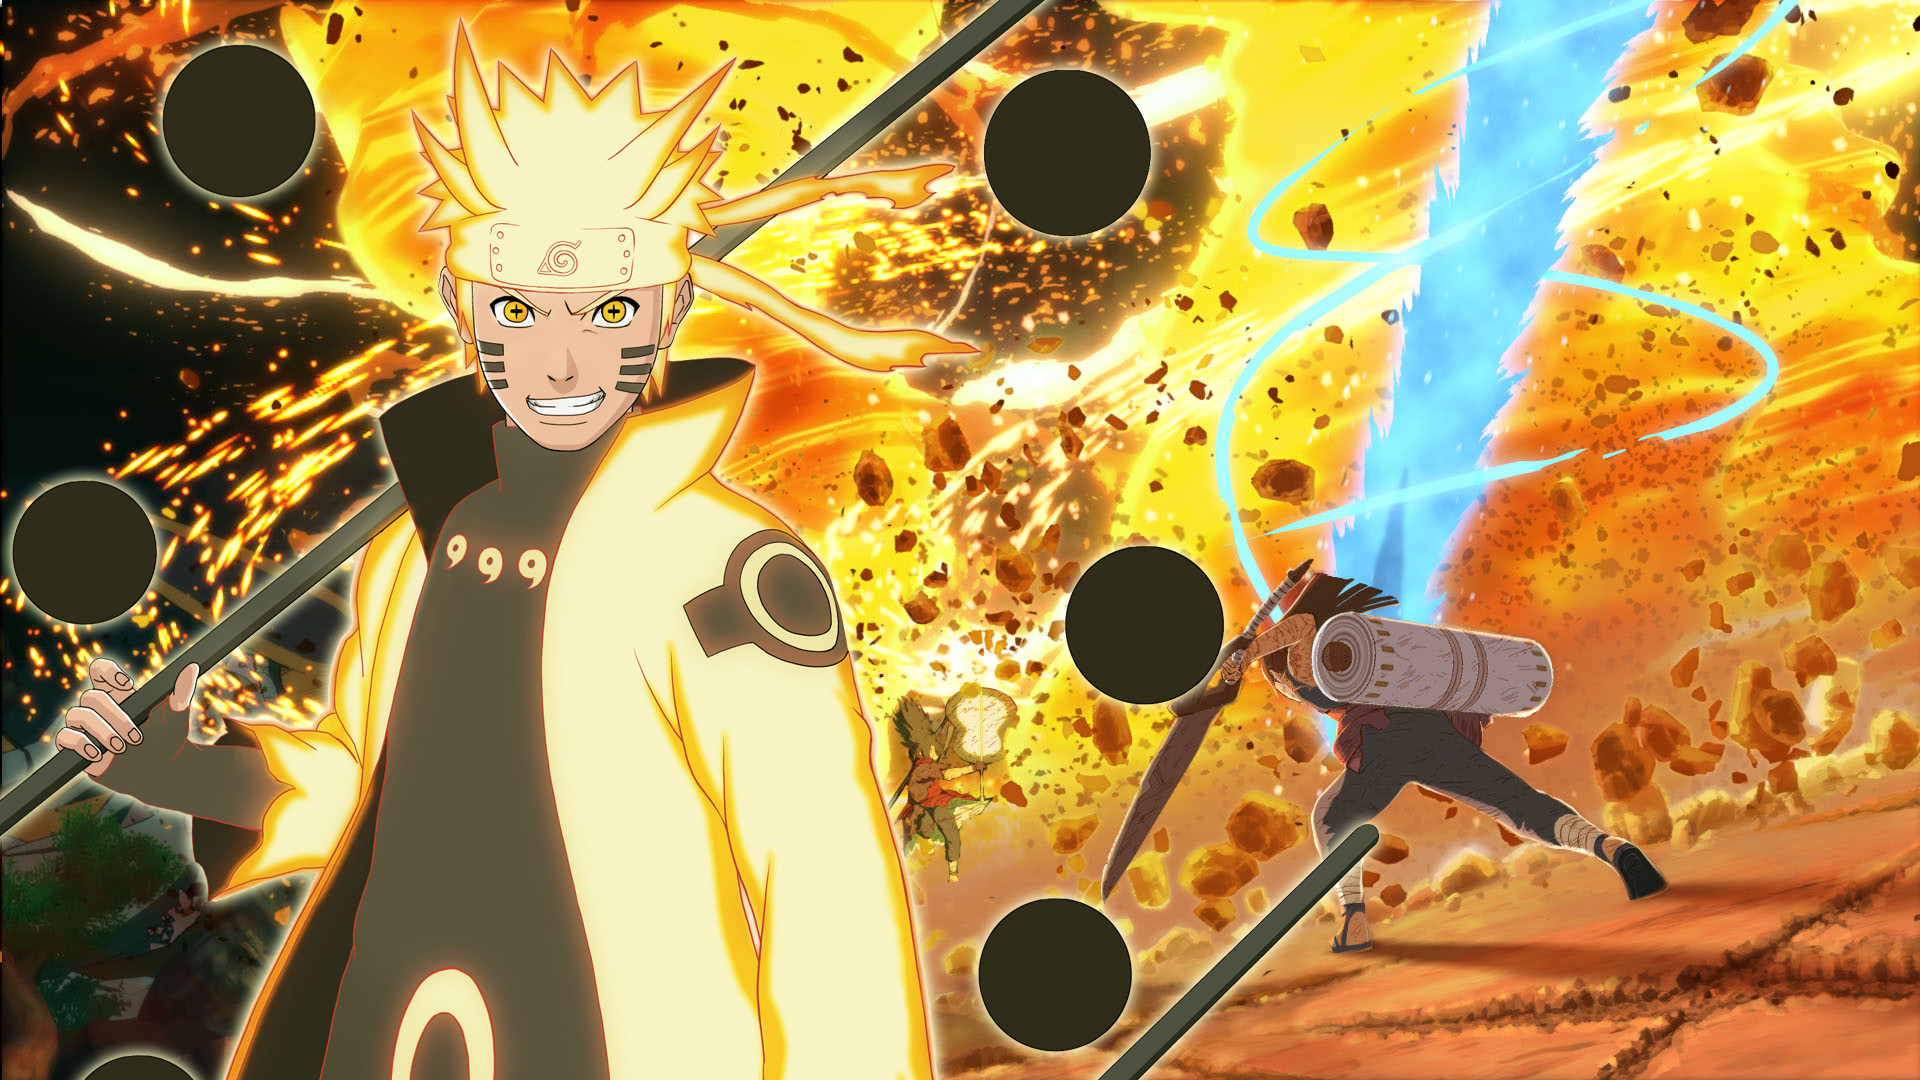 Naruto HD Wallpapers Backgrounds Wallpaper 1920×1080 Naruto Shippuden  Wallpaper (44 Wallpapers) |